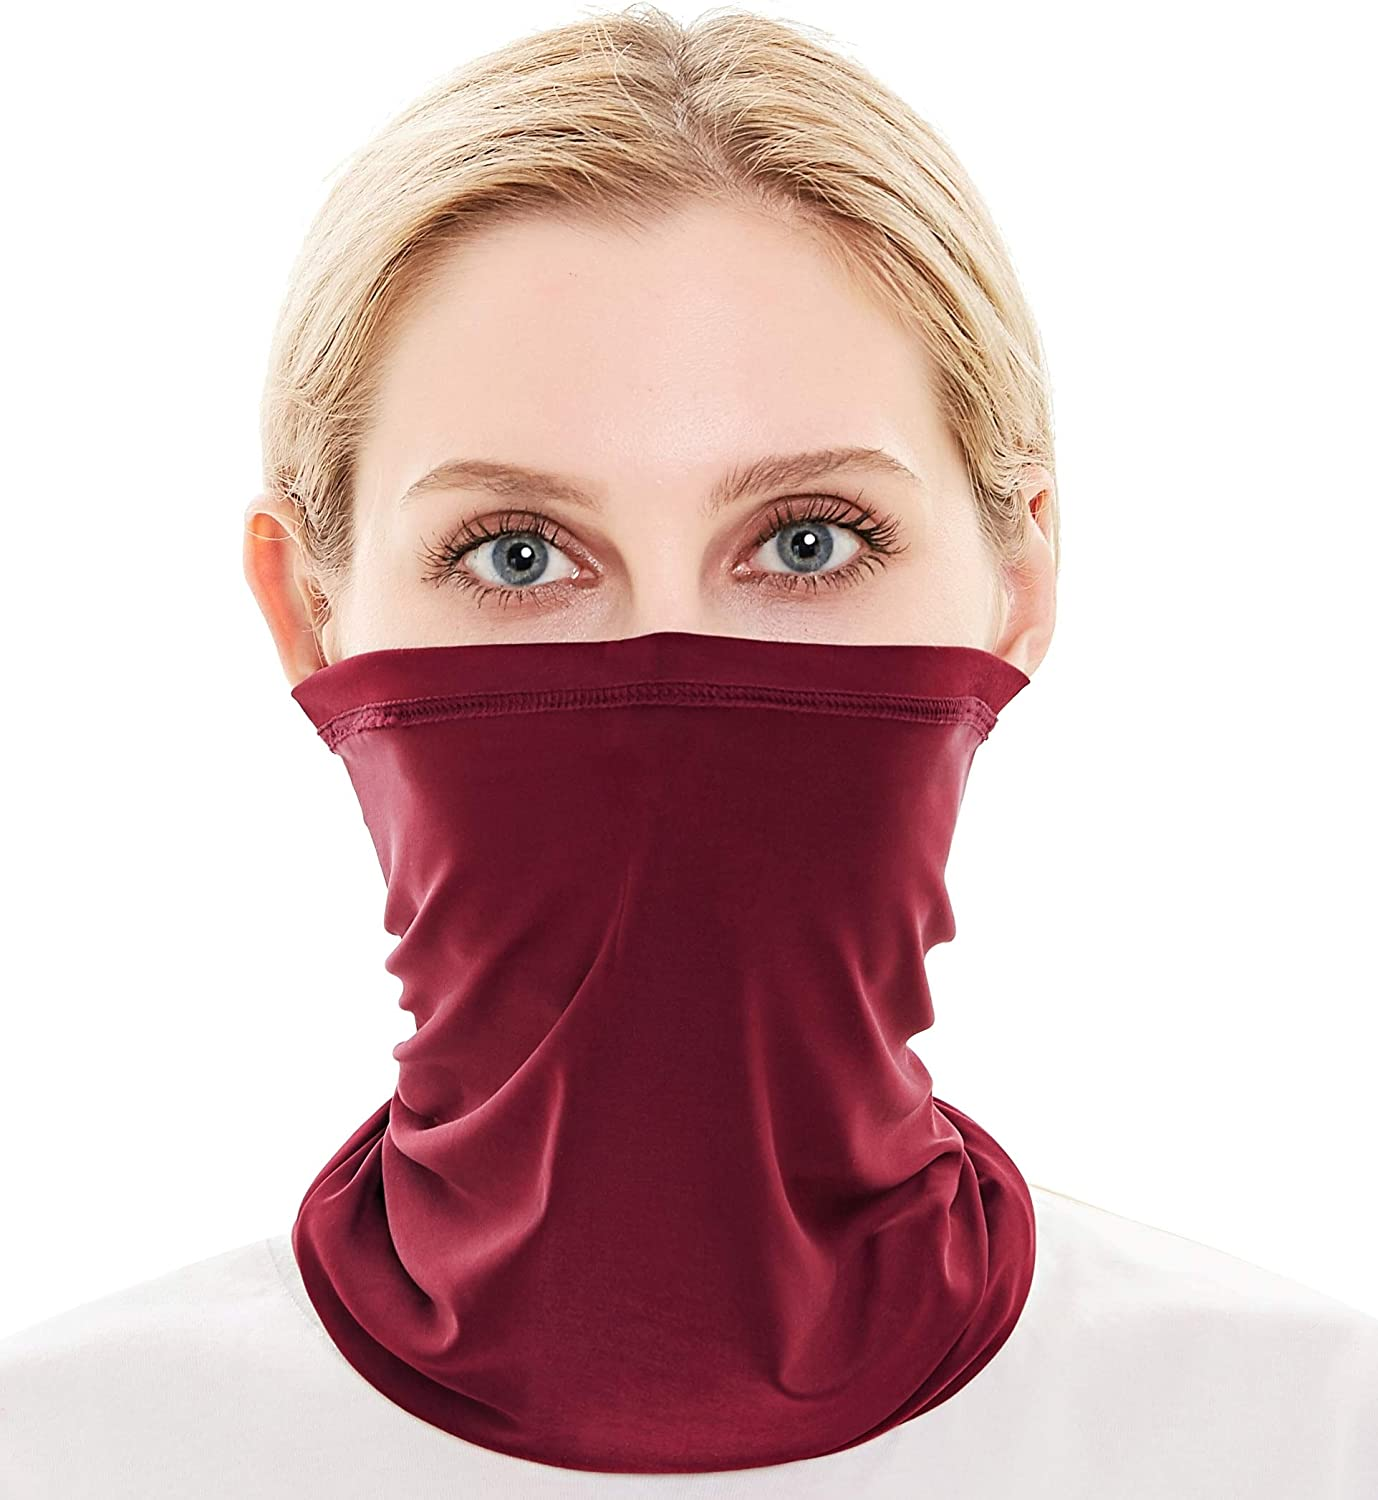 Neck Gaiter Face Cover Scarf Gator Face Mask for Cold Wind Dust - Reusable Balaclava Bandana for Men Women - 10 Ways to Wear